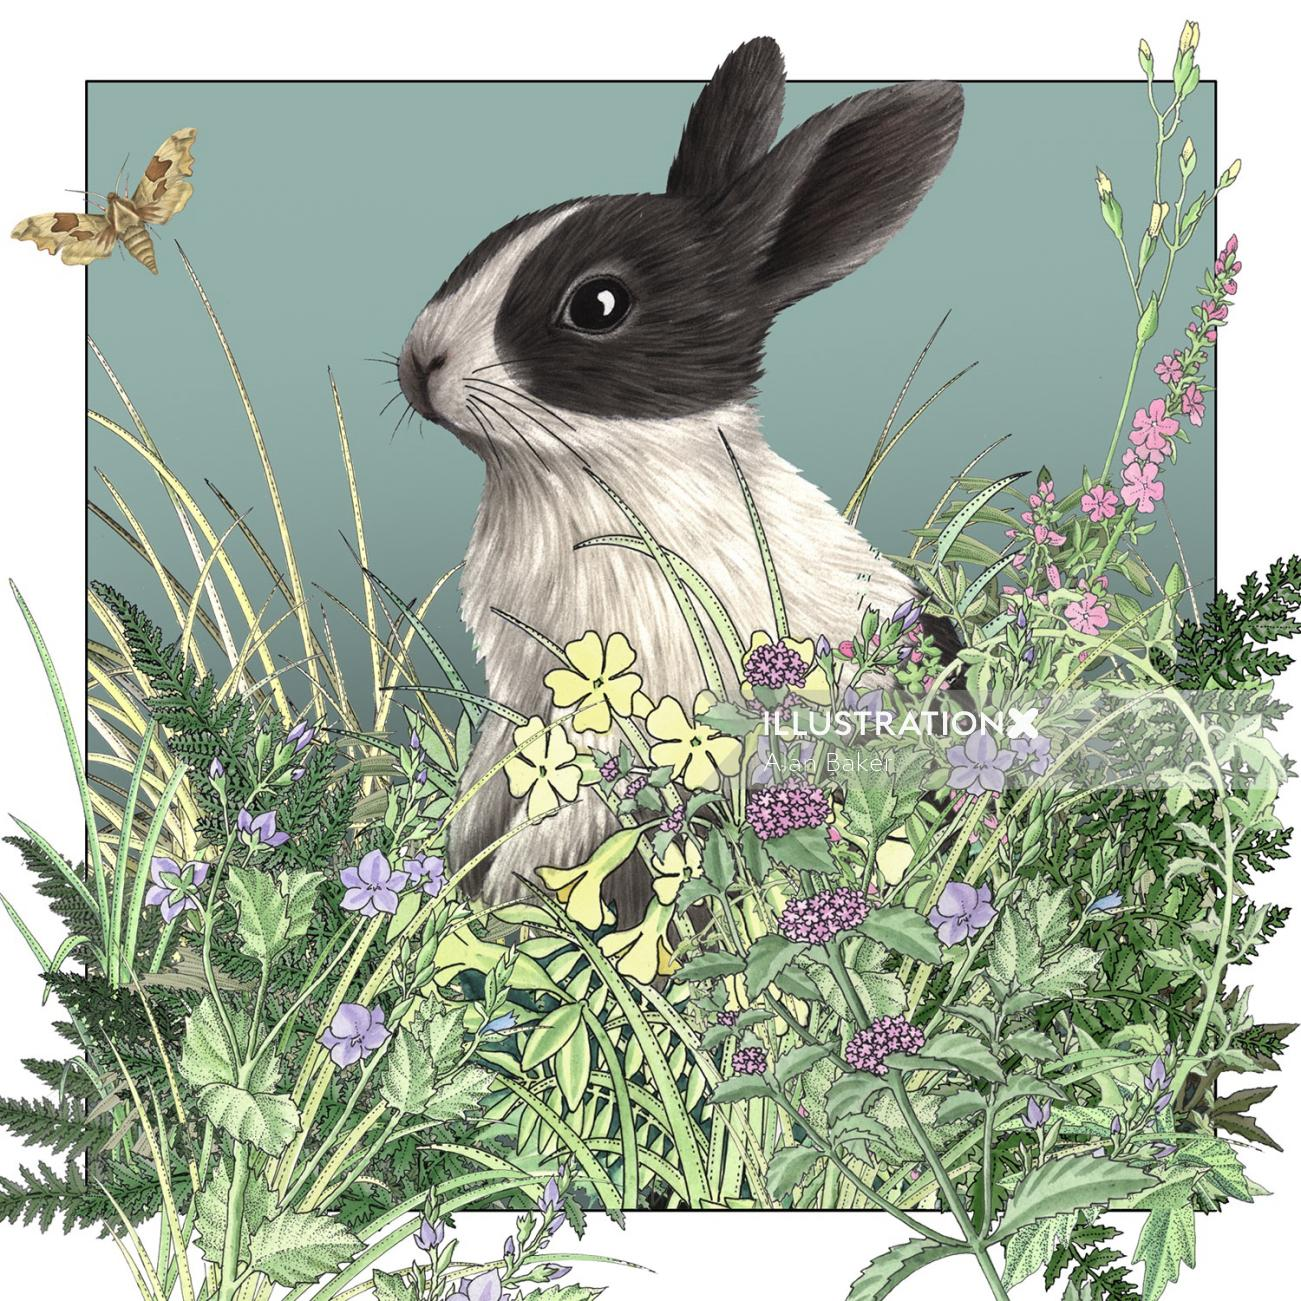 Illustration of Rabbit in the plants